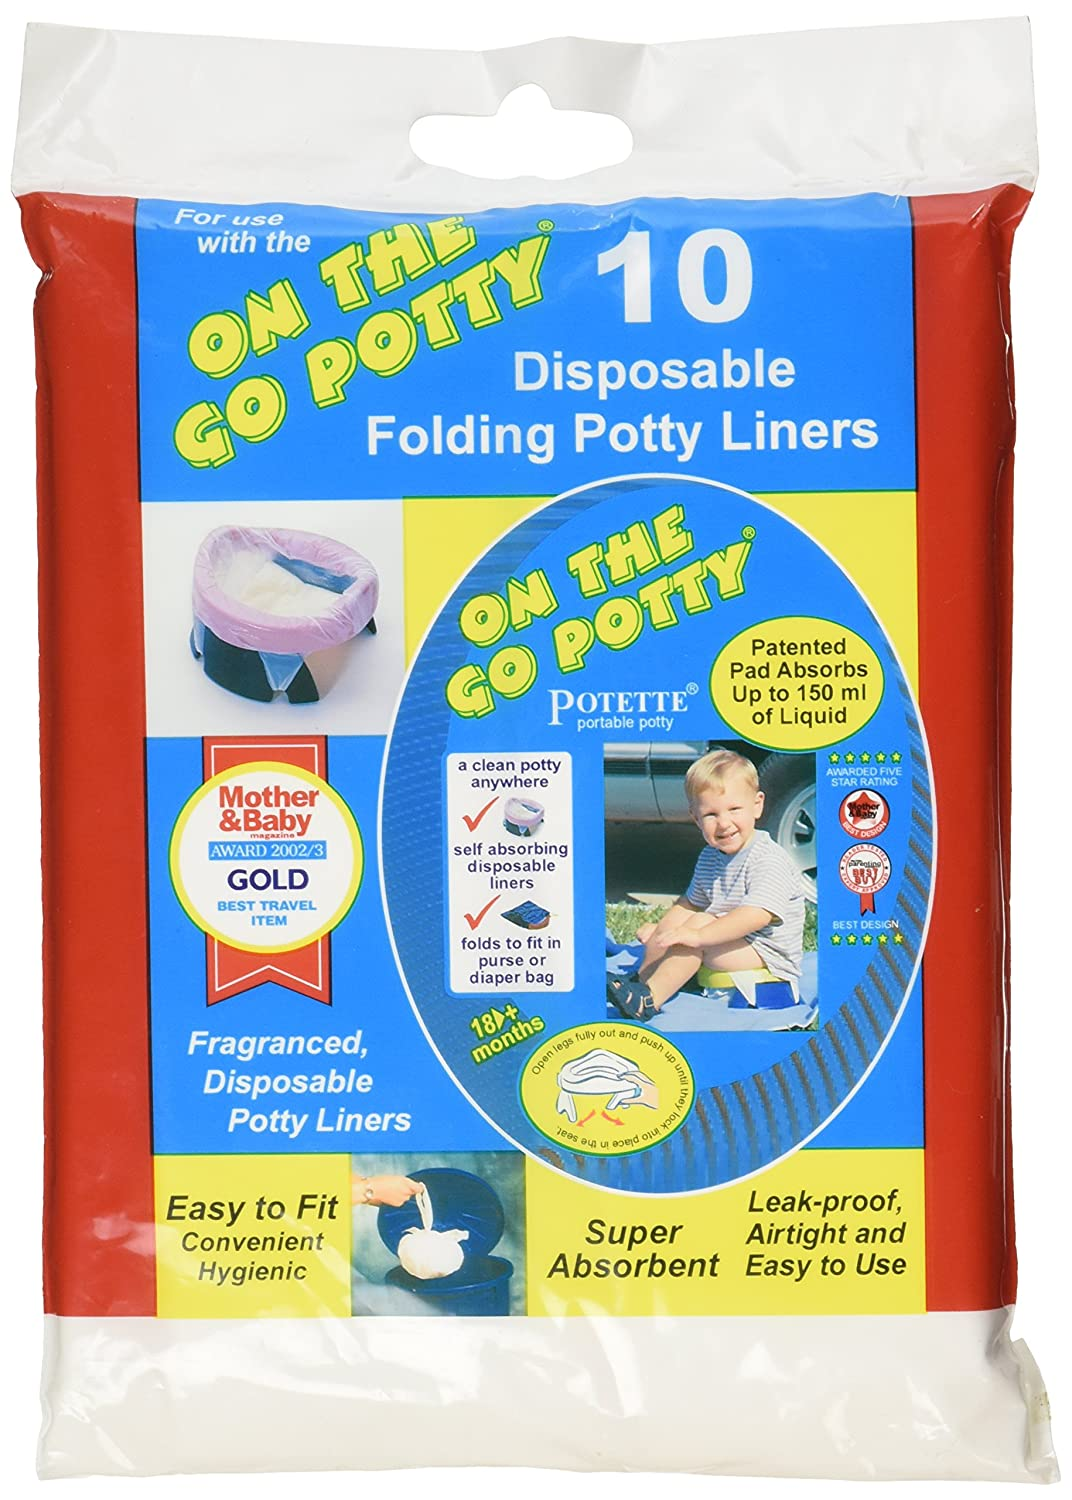 Kalencom Potette on the Go Potty Liner Re-fills 10-pack Pack 2